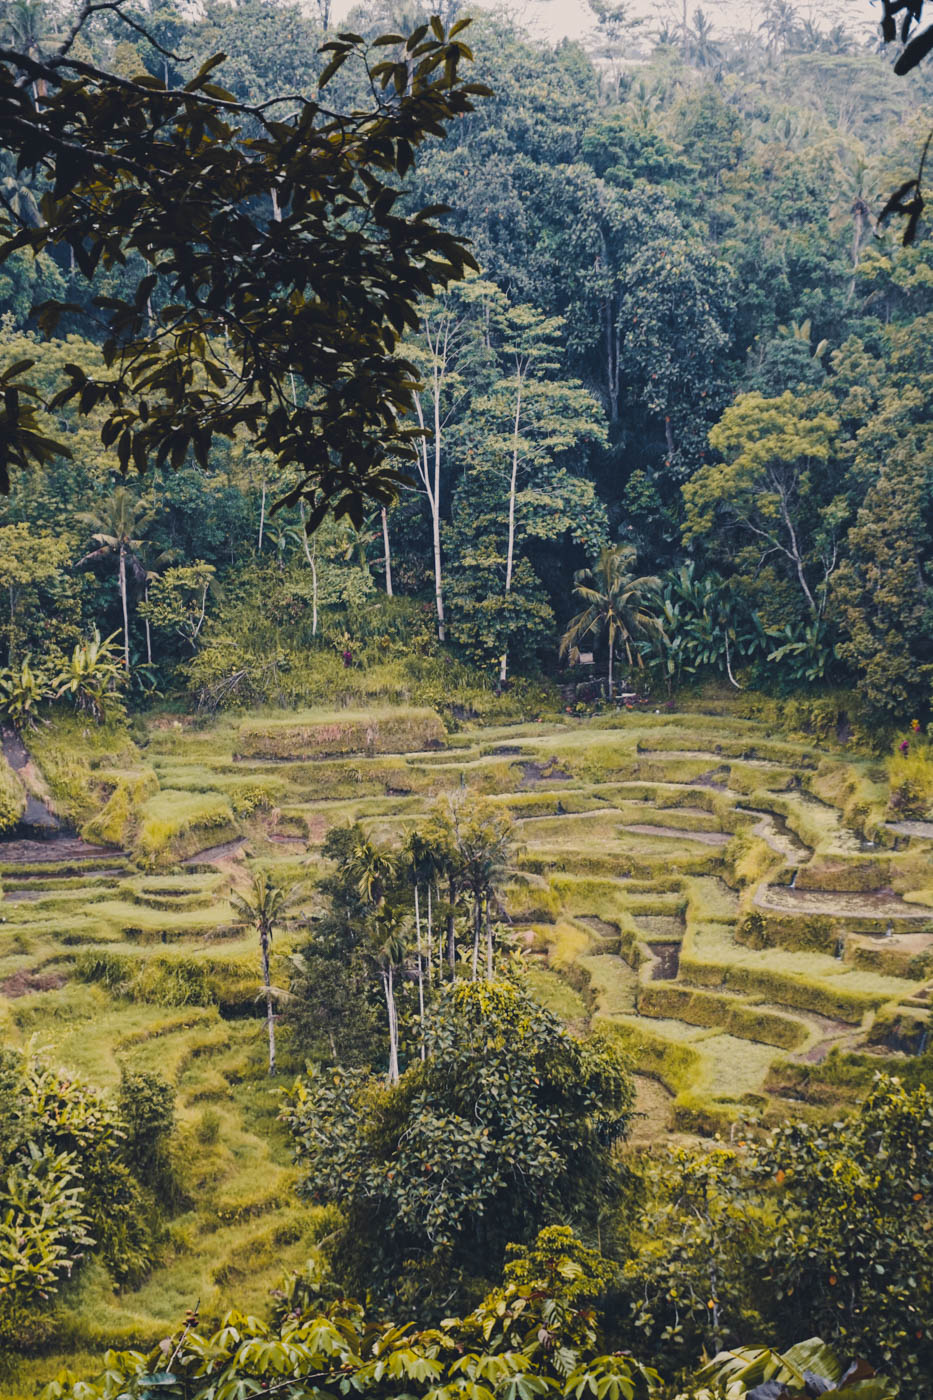 Tegalalang Rice Terraces - Ubud - Bali Itinerary #traveldestinations #bali #beautifulplaces